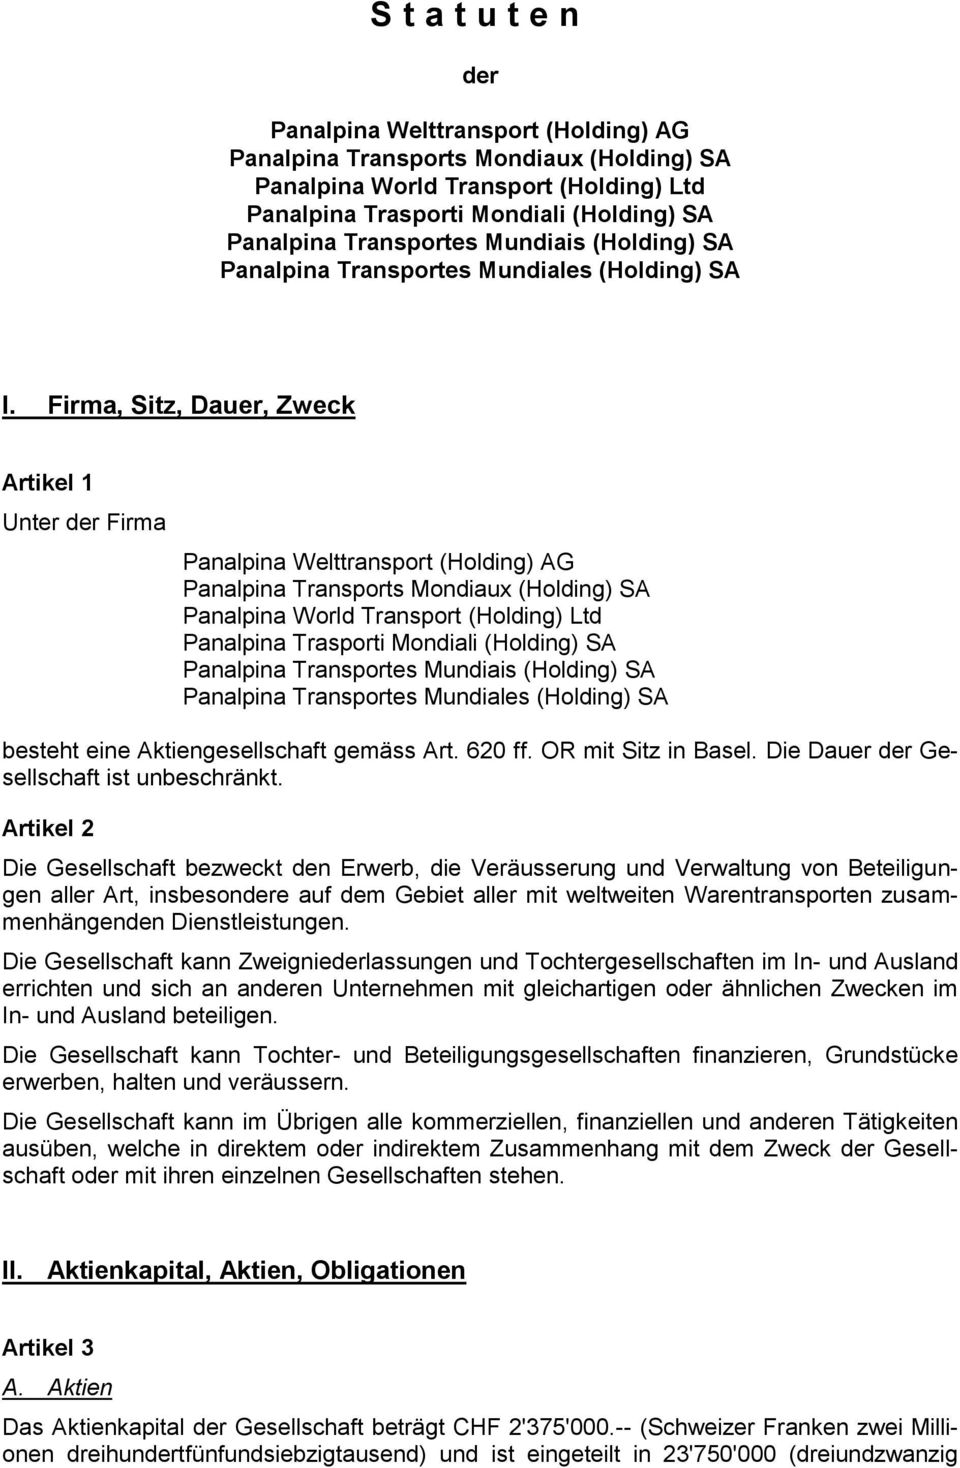 Firma, Sitz, Dauer, Zweck Artikel 1 Unter der Firma Panalpina Welttransport (Holding) AG Panalpina Transports Mondiaux (Holding) SA Panalpina World Transport (Holding) Ltd Panalpina Trasporti